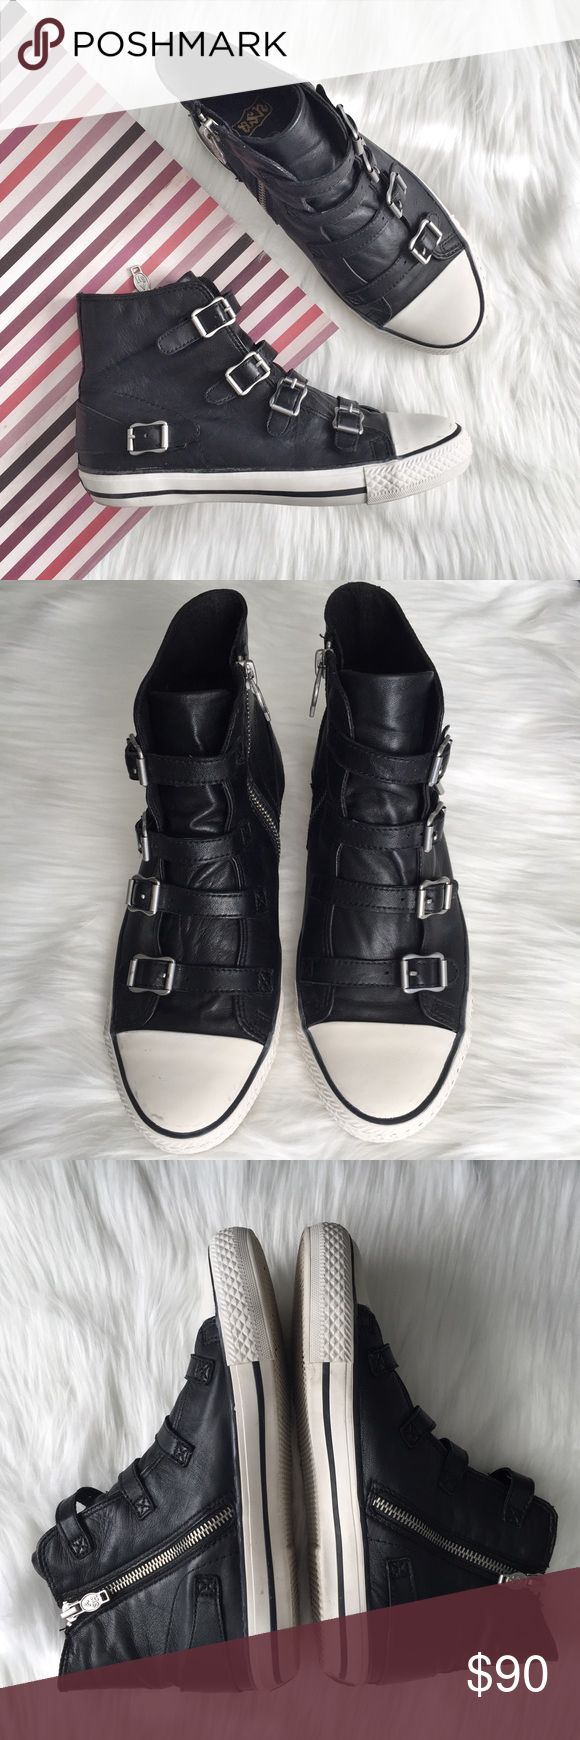 """Ash Virgin Black Leather Sneaker Pre-loved, No box, Women's High top trainer, Strap and buckle detail, Side zipper, Buttery soft Nappa leather upper, textile lining, rubber sole, approx 4"""" shaft, Black Color. Please feel free to ask questions. No trades. Ash Shoes Sneakers"""